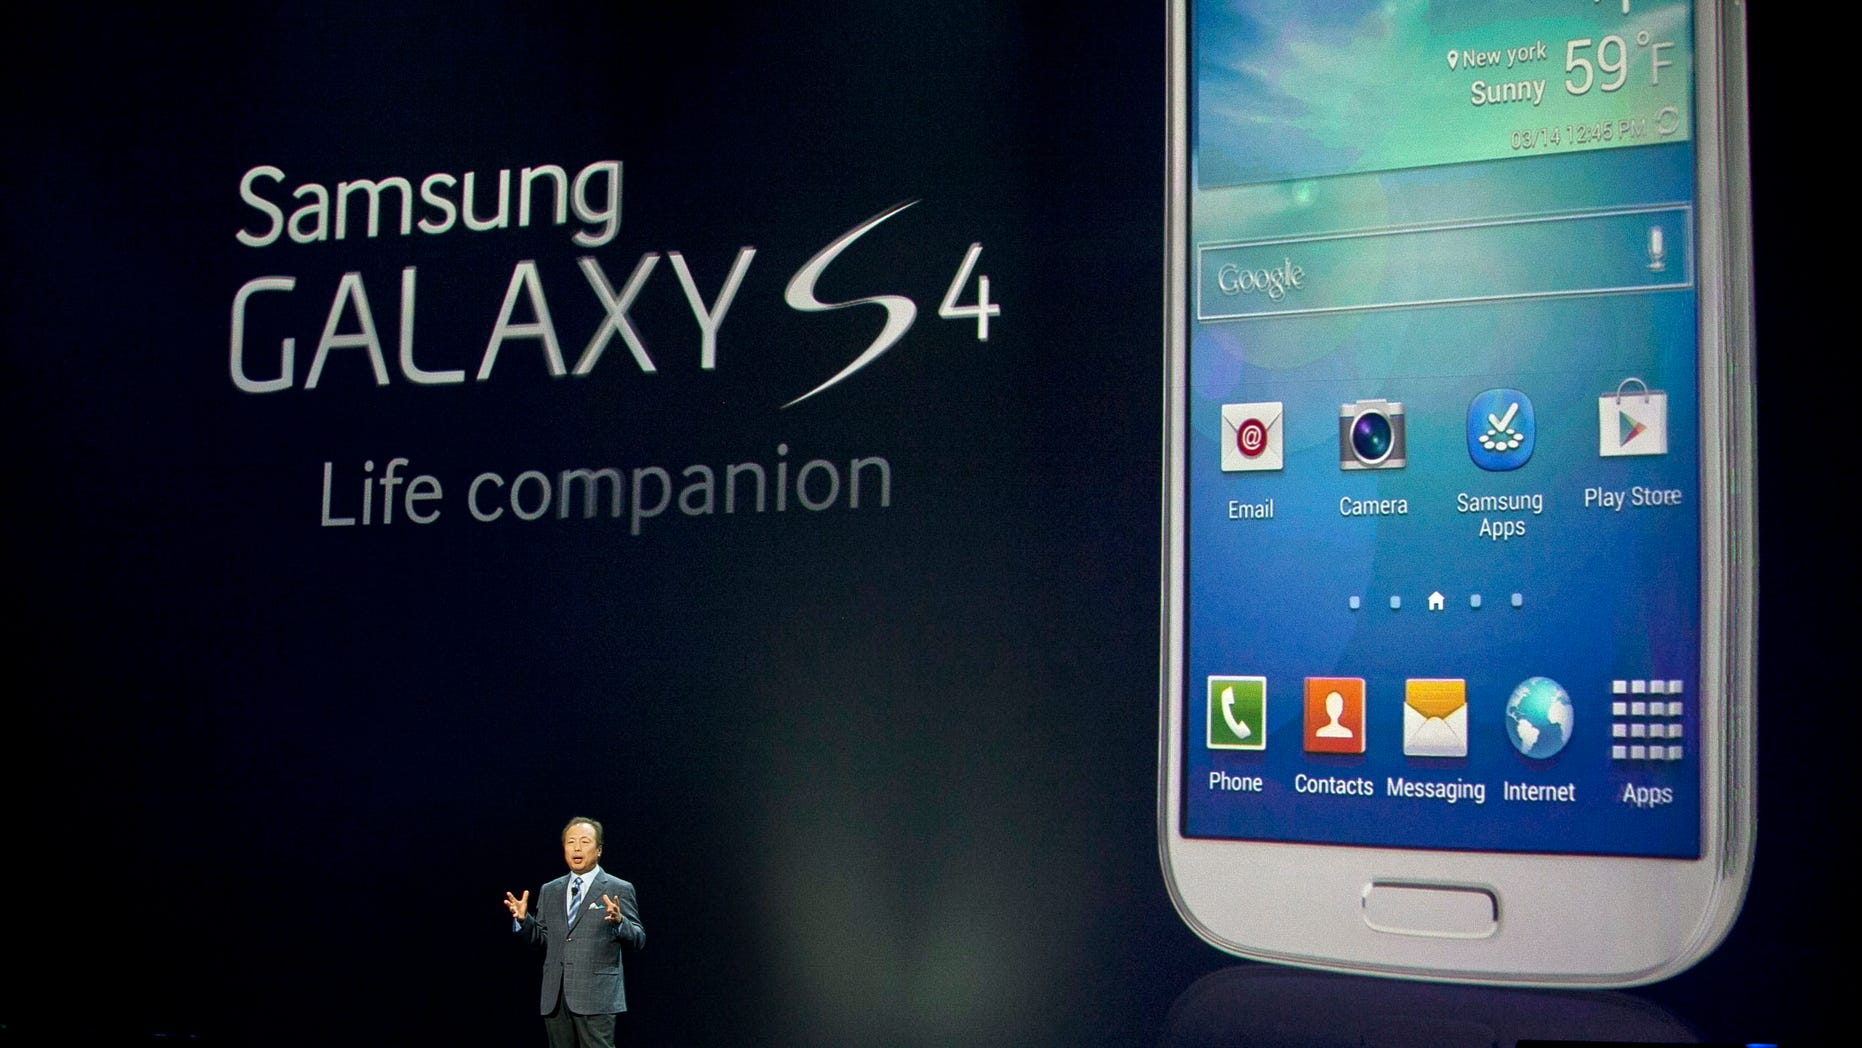 NEW YORK, NY - MARCH 14: JK Shin, President and Head of IT and mobile communication division of Samsung introduces the Samsung Galaxy S IV, March 14, 2013 in New York City.